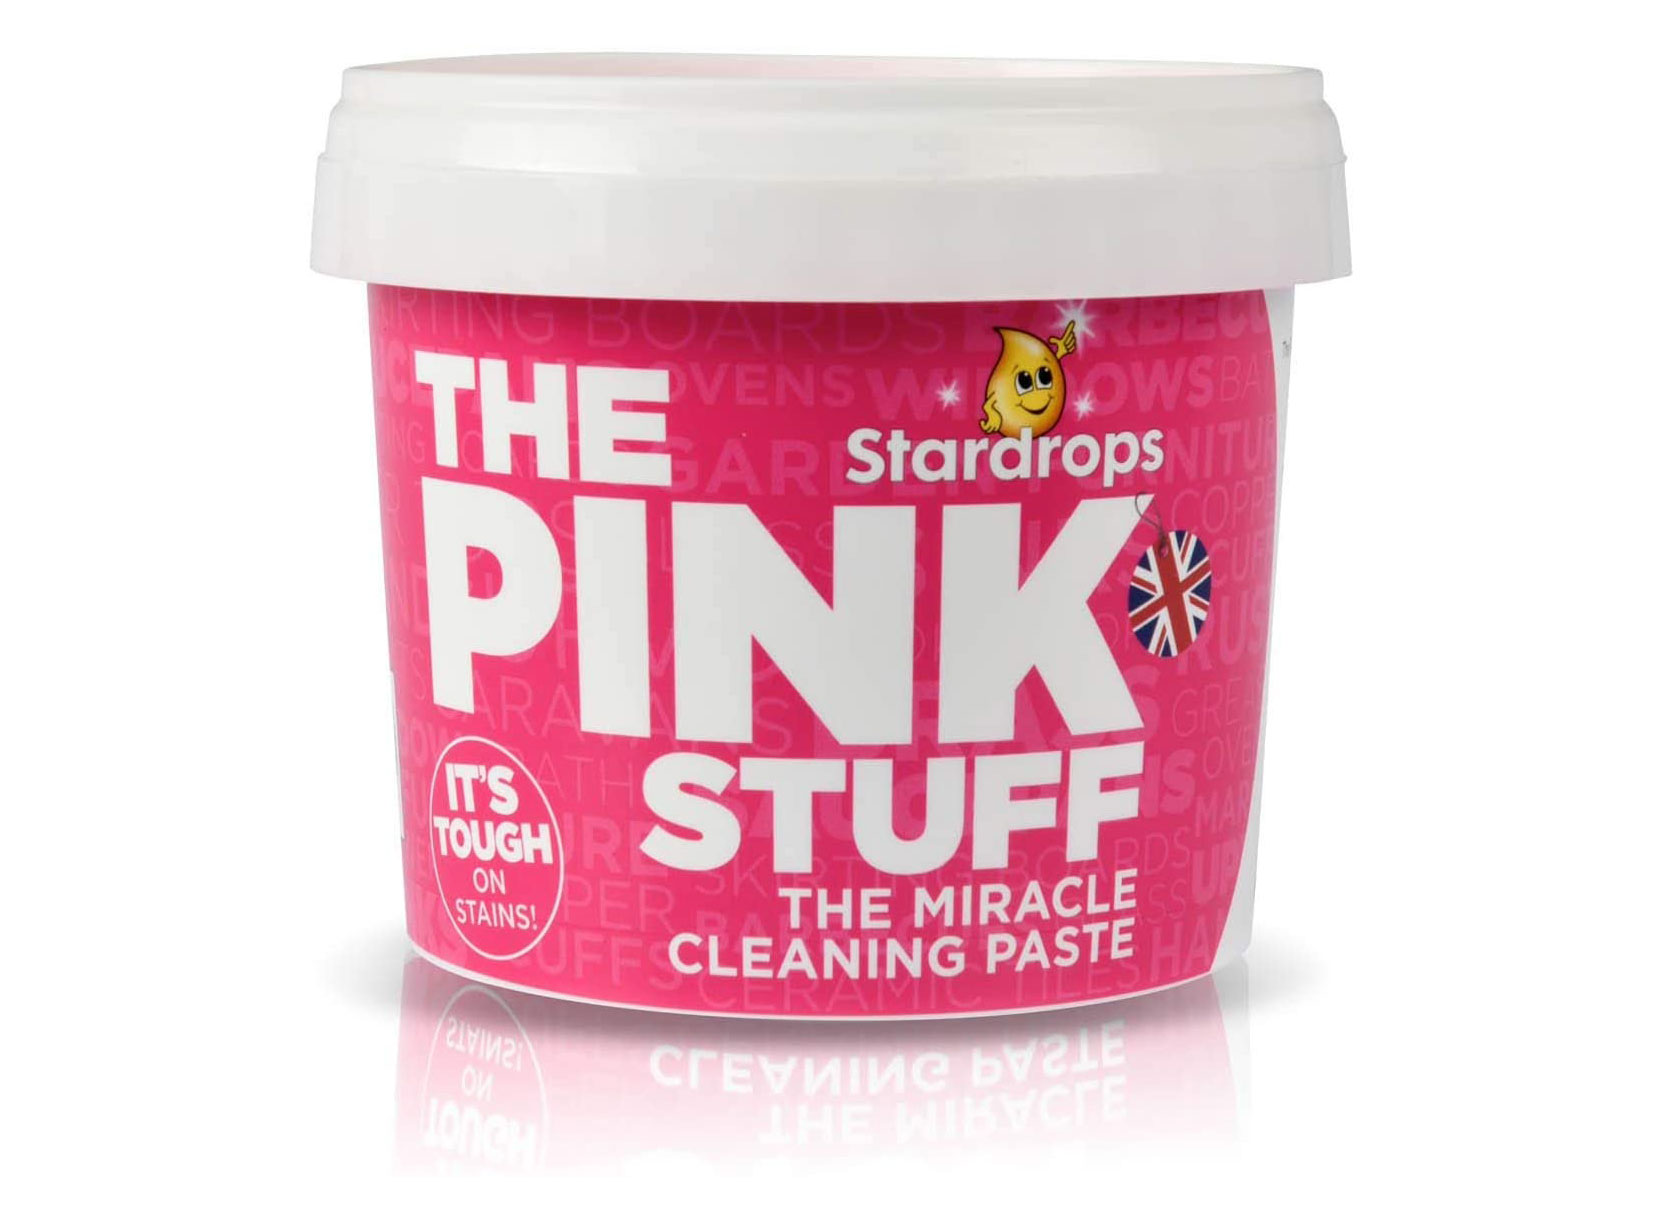 Pink Stuff Cleaning Paste works — just don't eat it